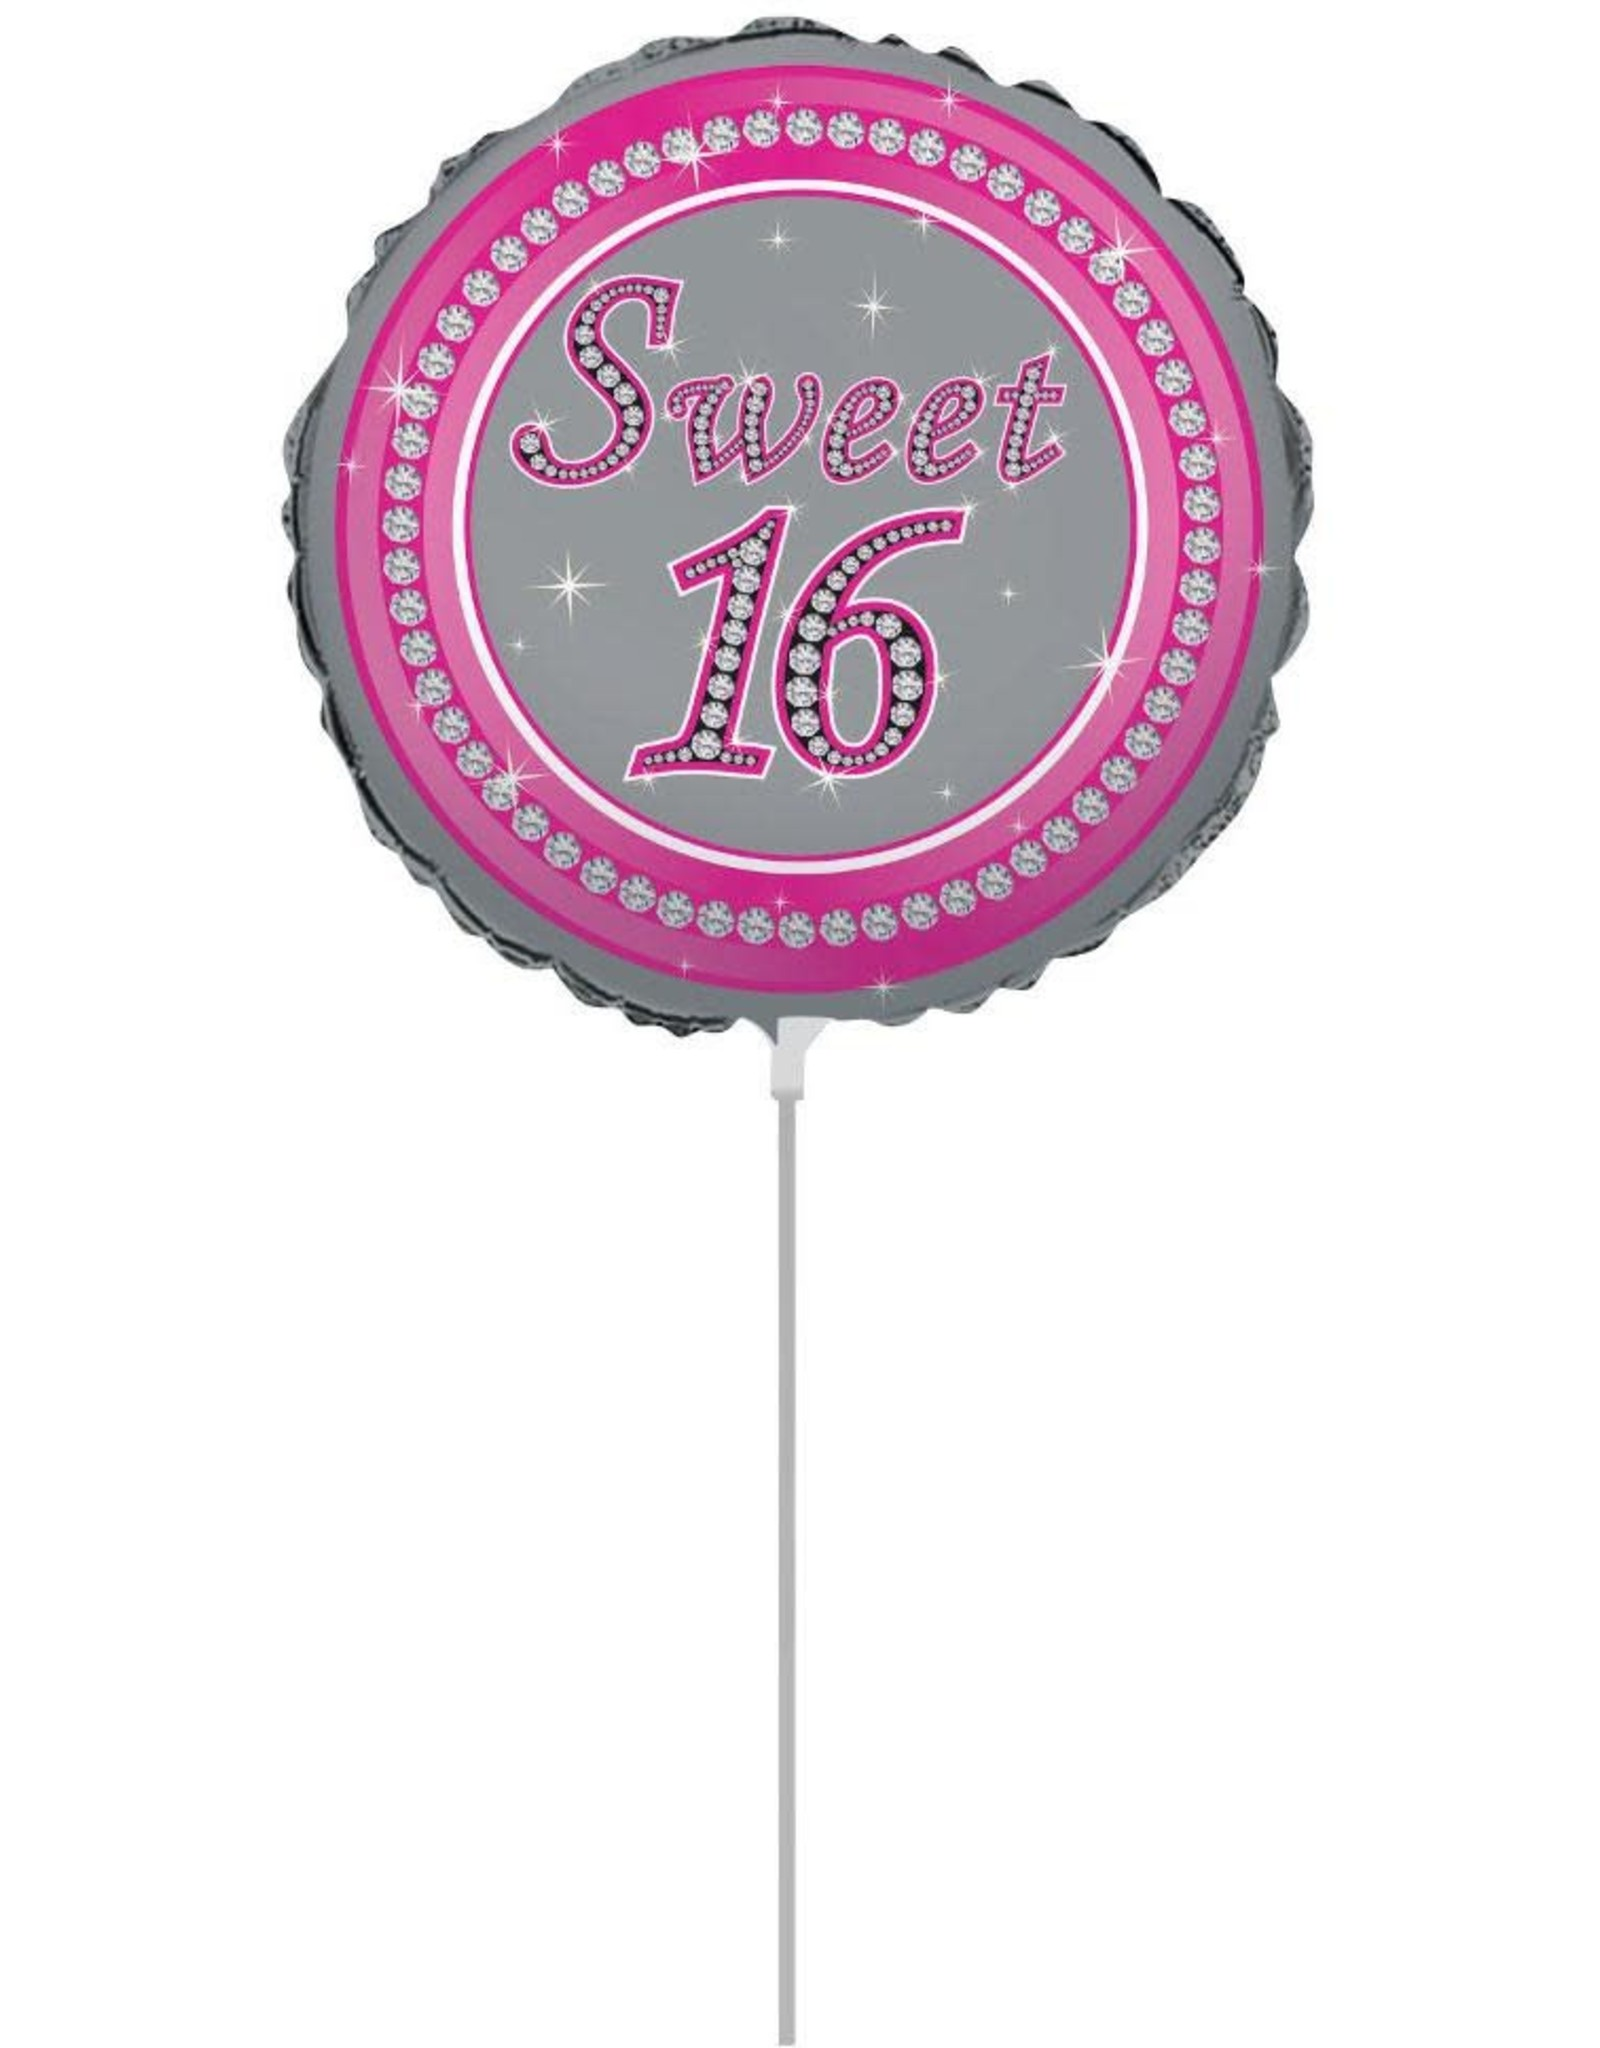 Wallys party factory Sweet 16 Air Filled Balloon